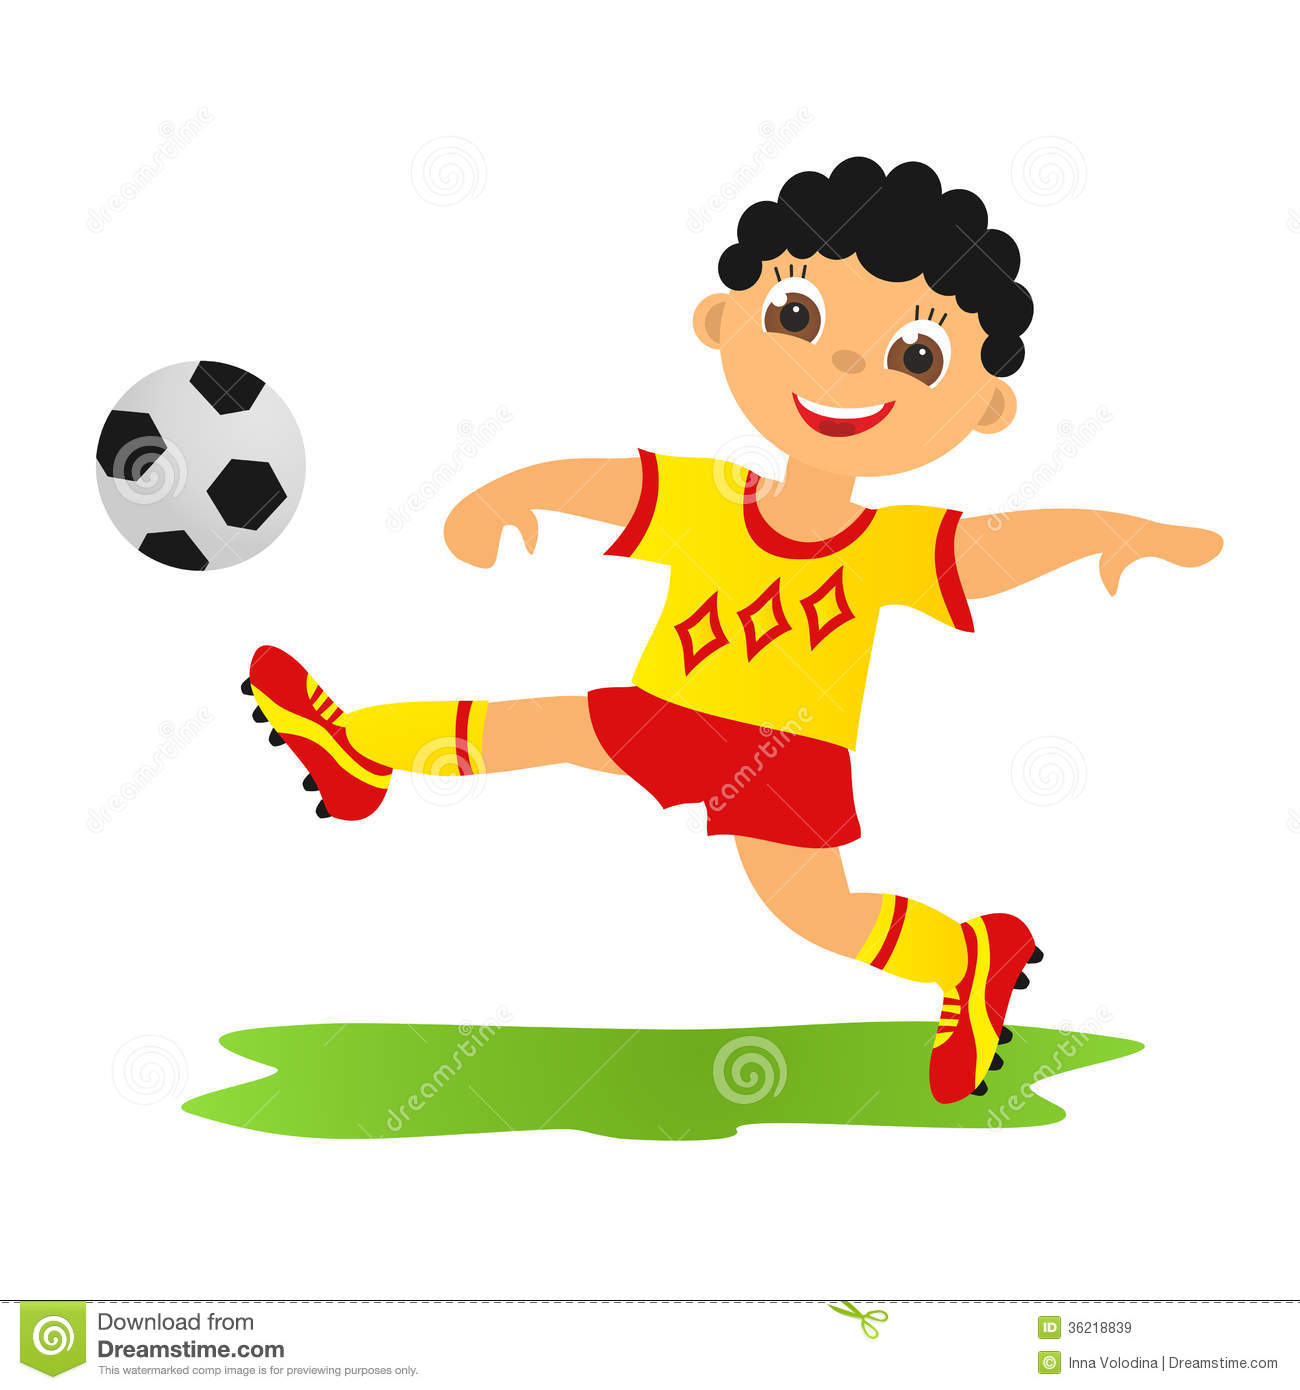 Football sports clipart #8